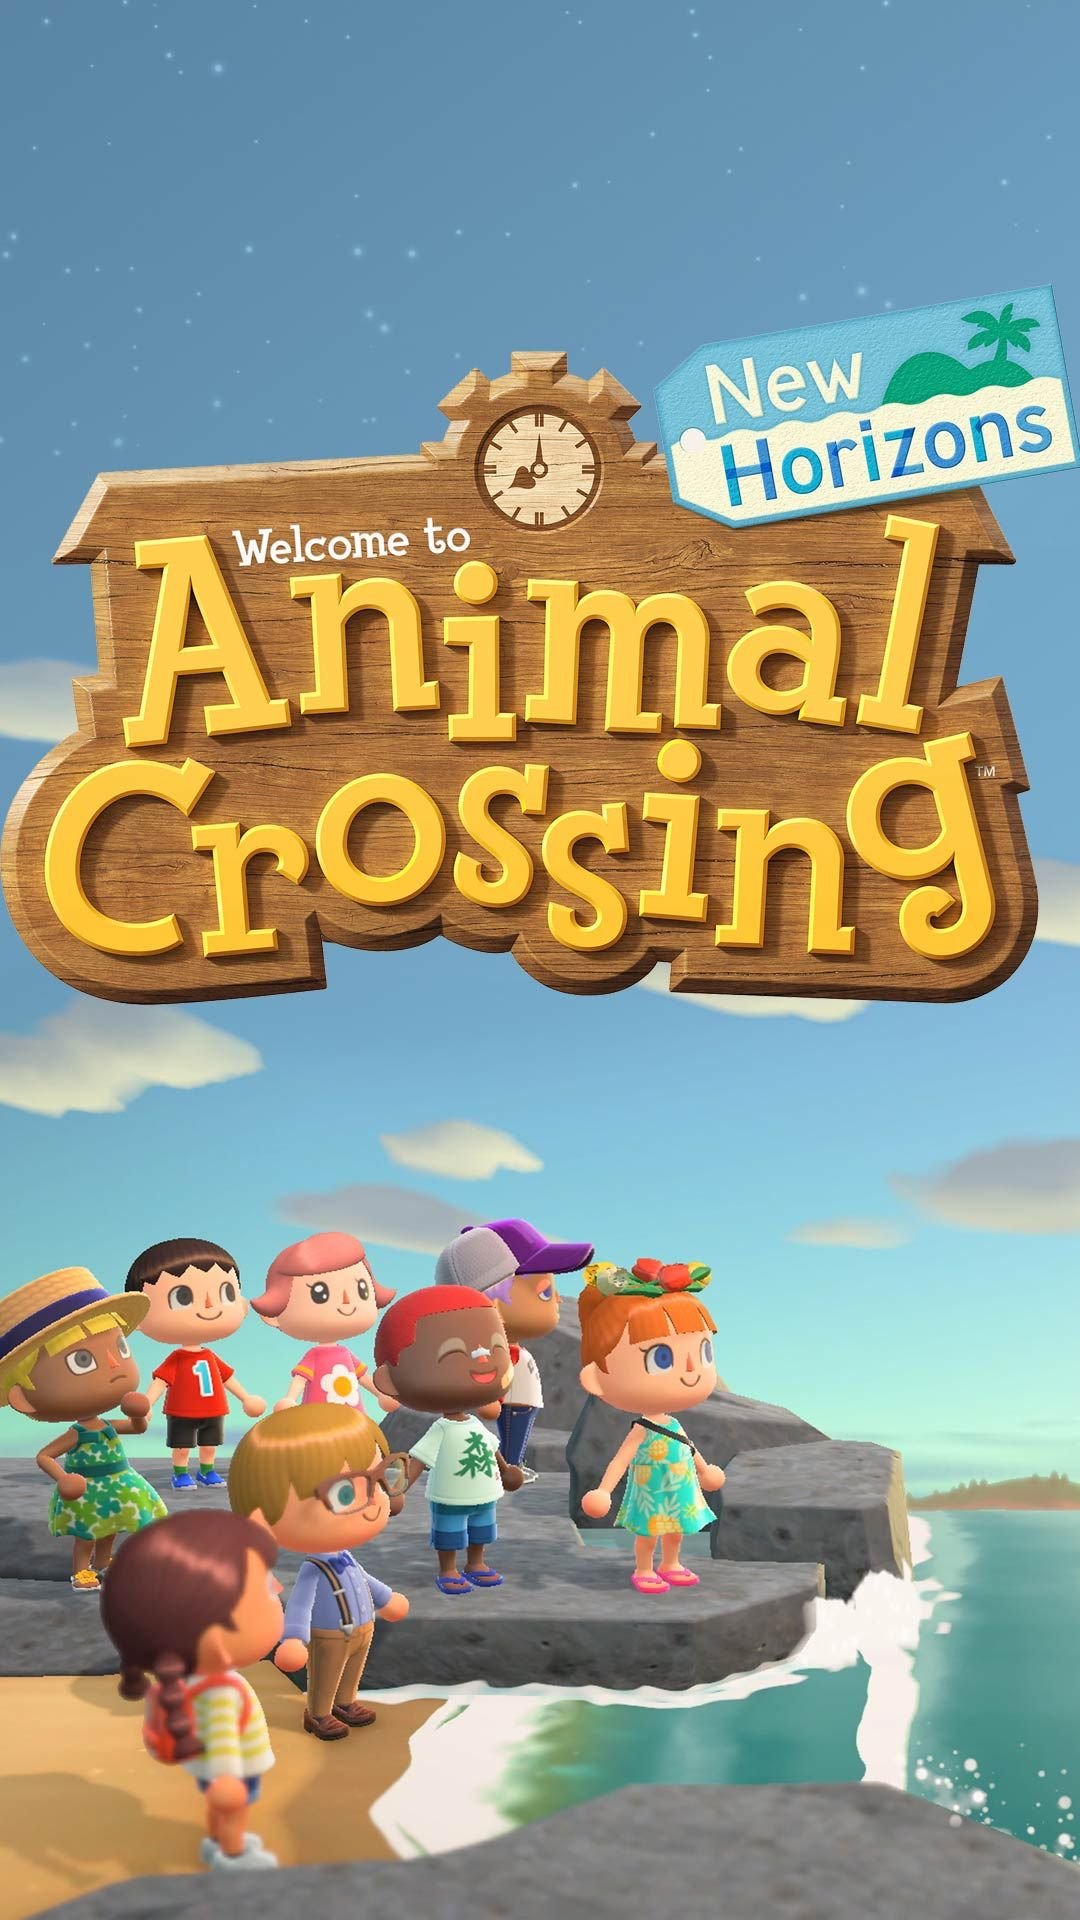 Animal Crossing New Horizons Is The Most Expected Social Life Simulation Game Get Some Hd Images T In 2020 Android Wallpaper Art Animal Crossing Hd Phone Backgrounds